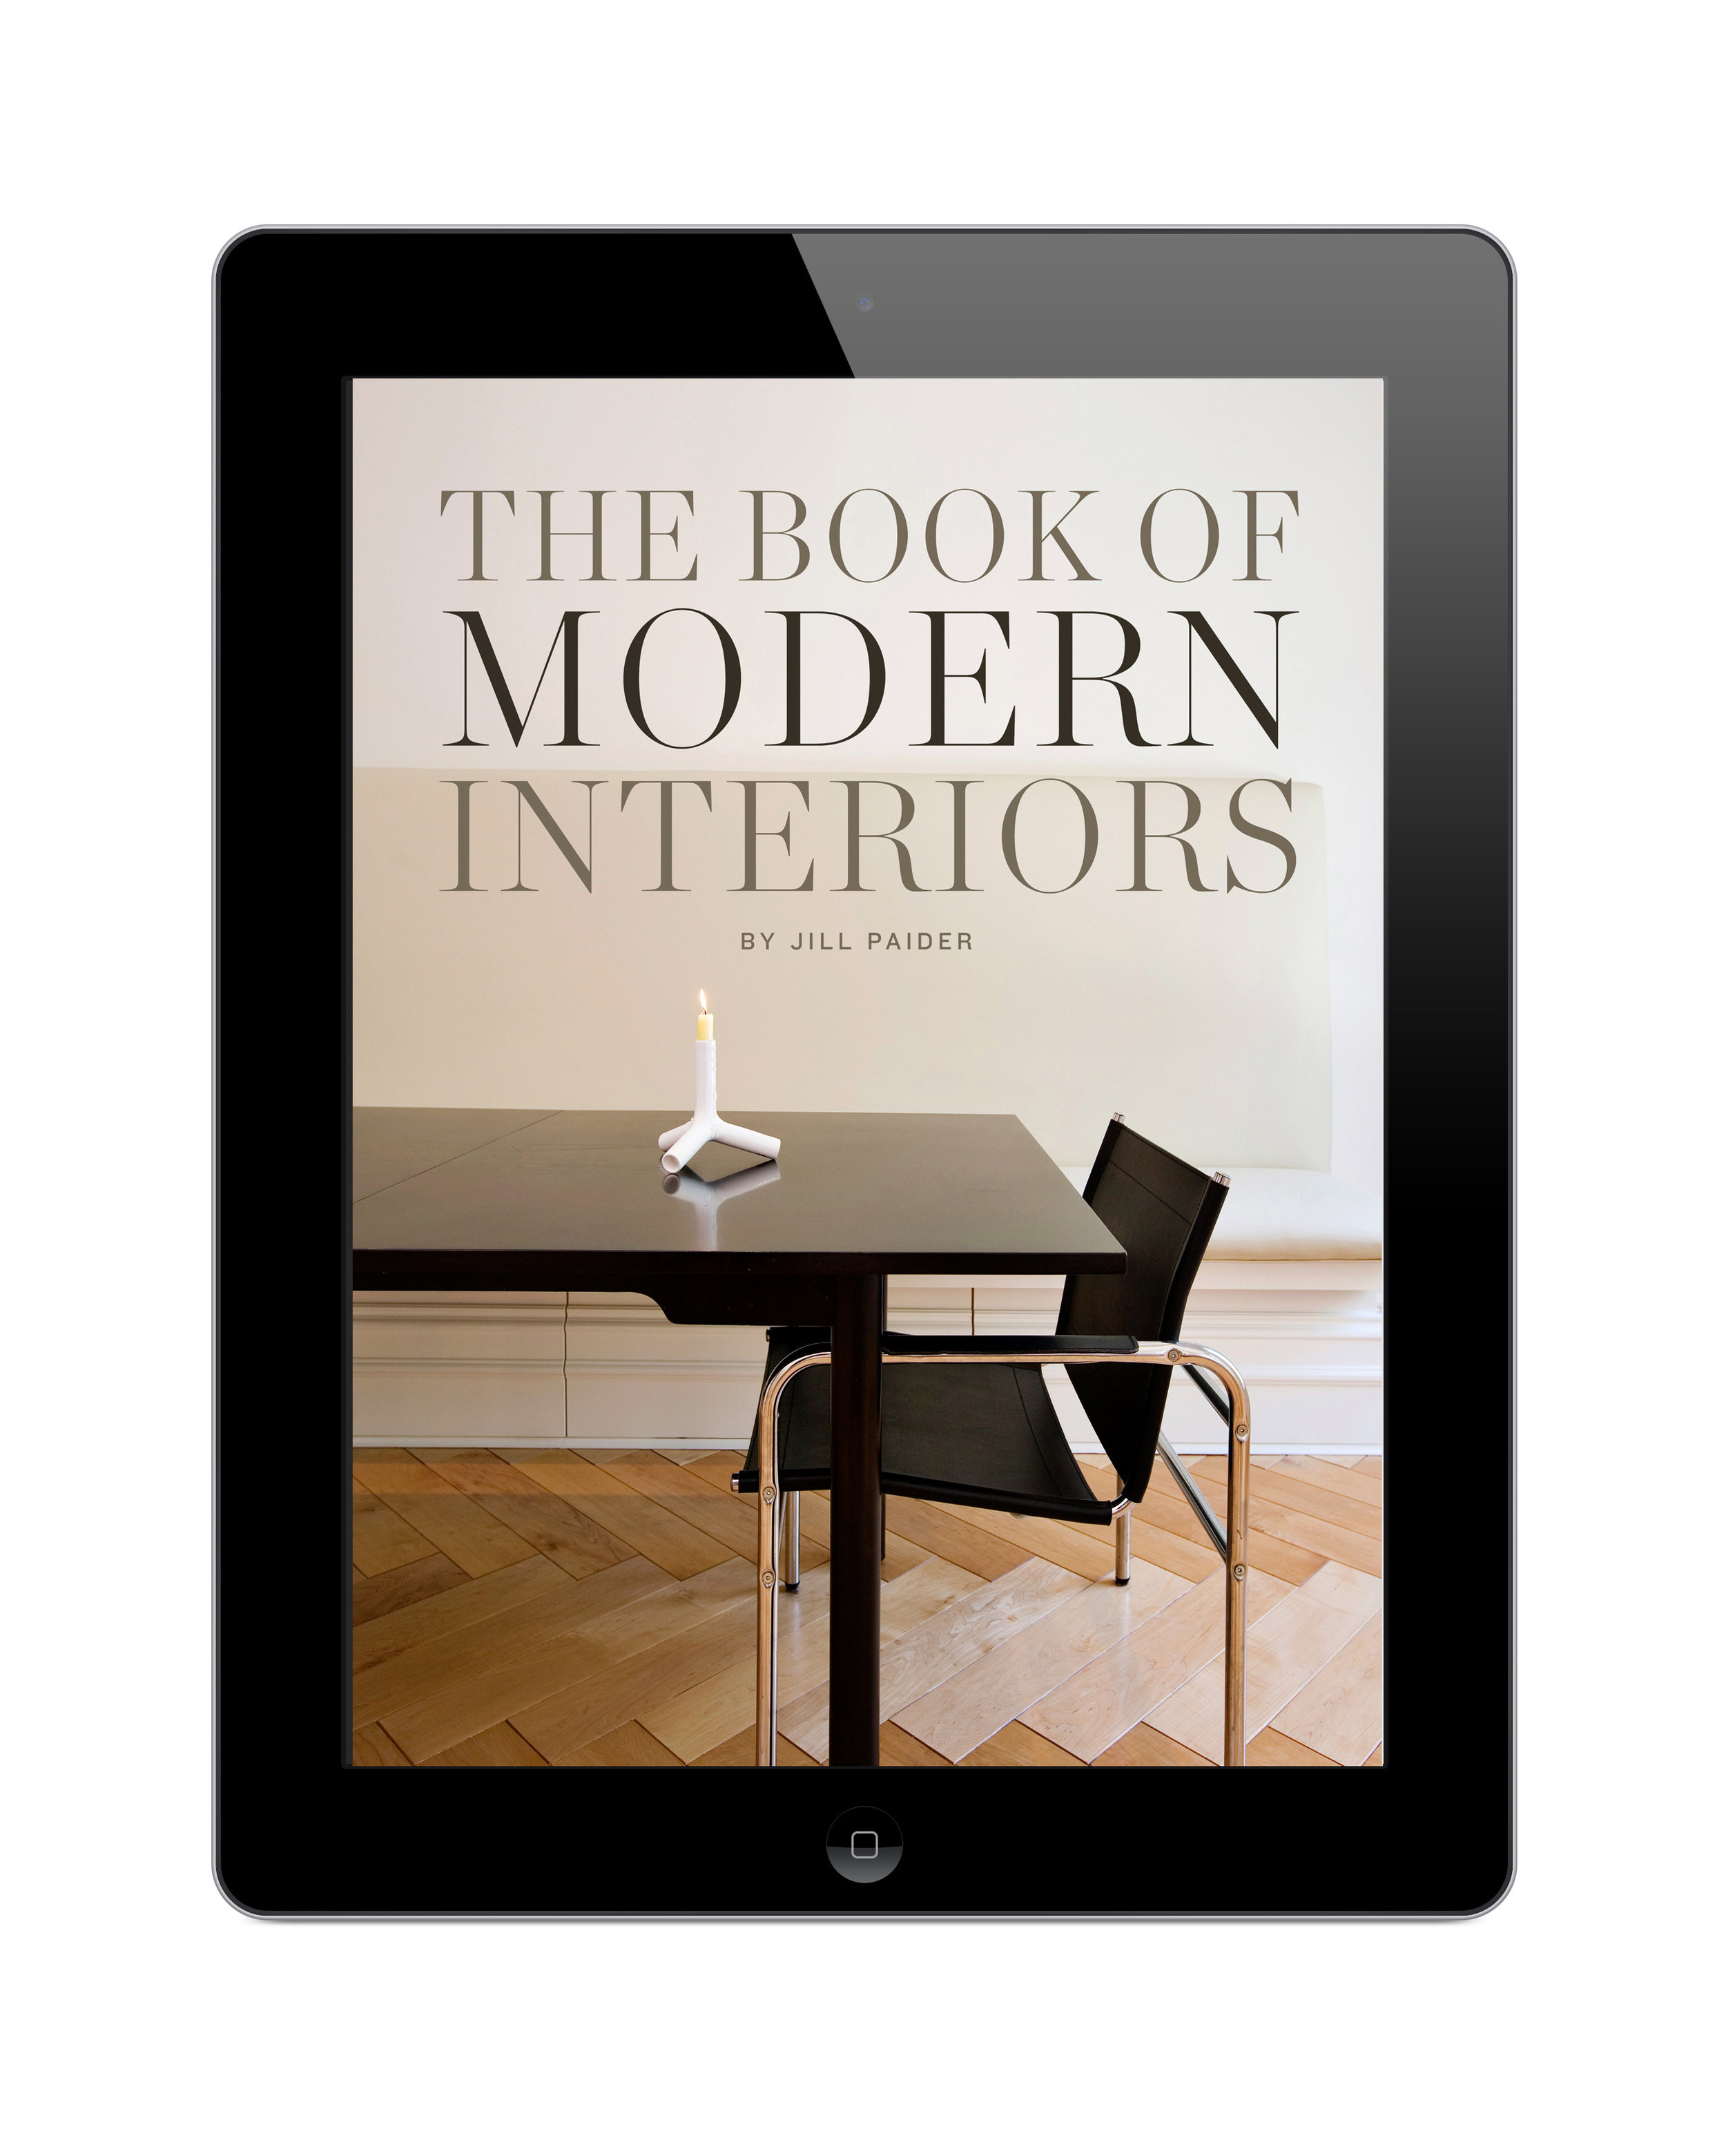 THE BOOK OF MODERN INTERIORS - DIGITAL EDITION